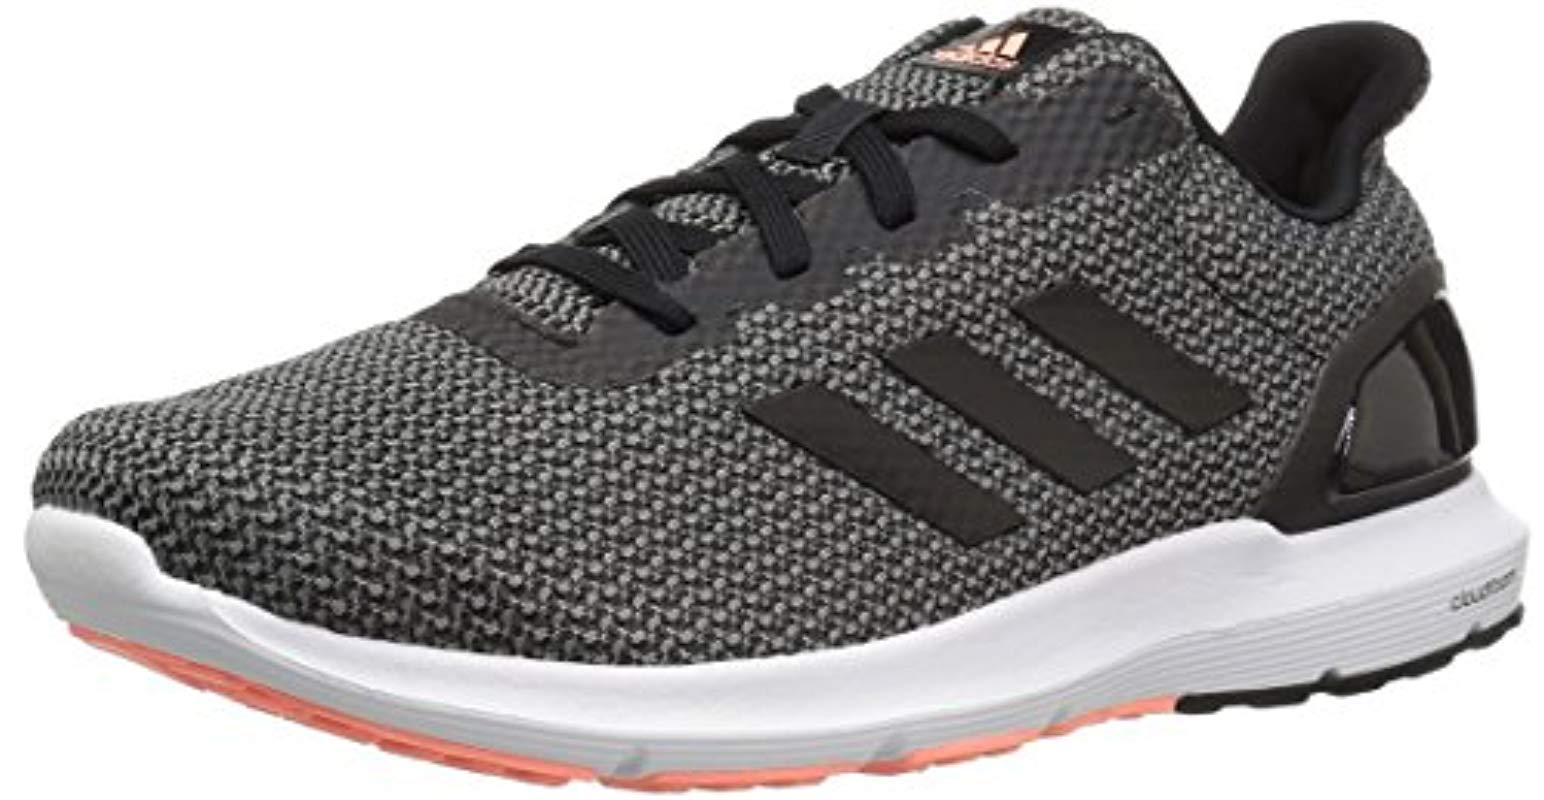 afac2d606 Lyst - adidas Cosmic 2 Sl W Running Shoe in Black - Save 16%